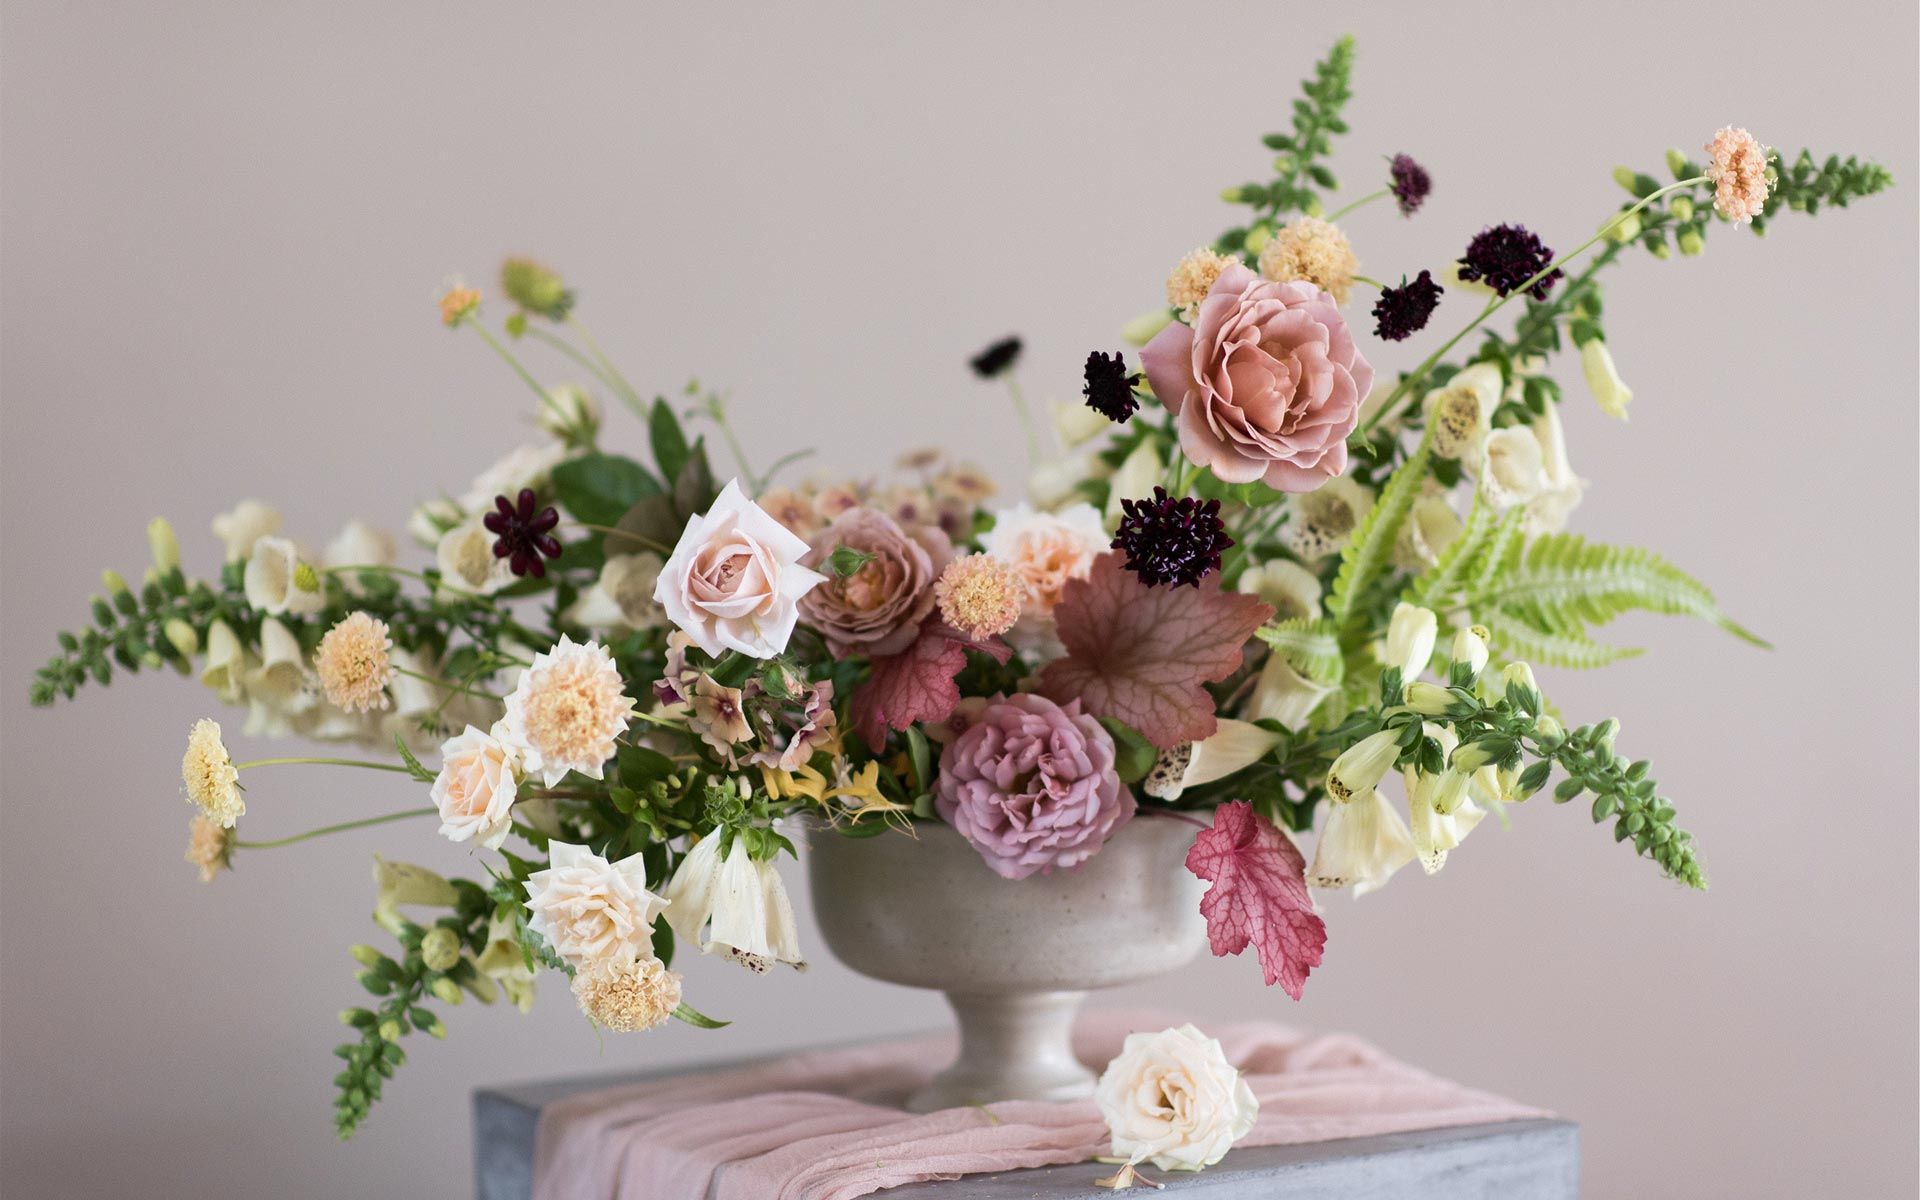 Santa Barbara Florist specializing in wedding flowers, floral design, ceremony and reception flowers